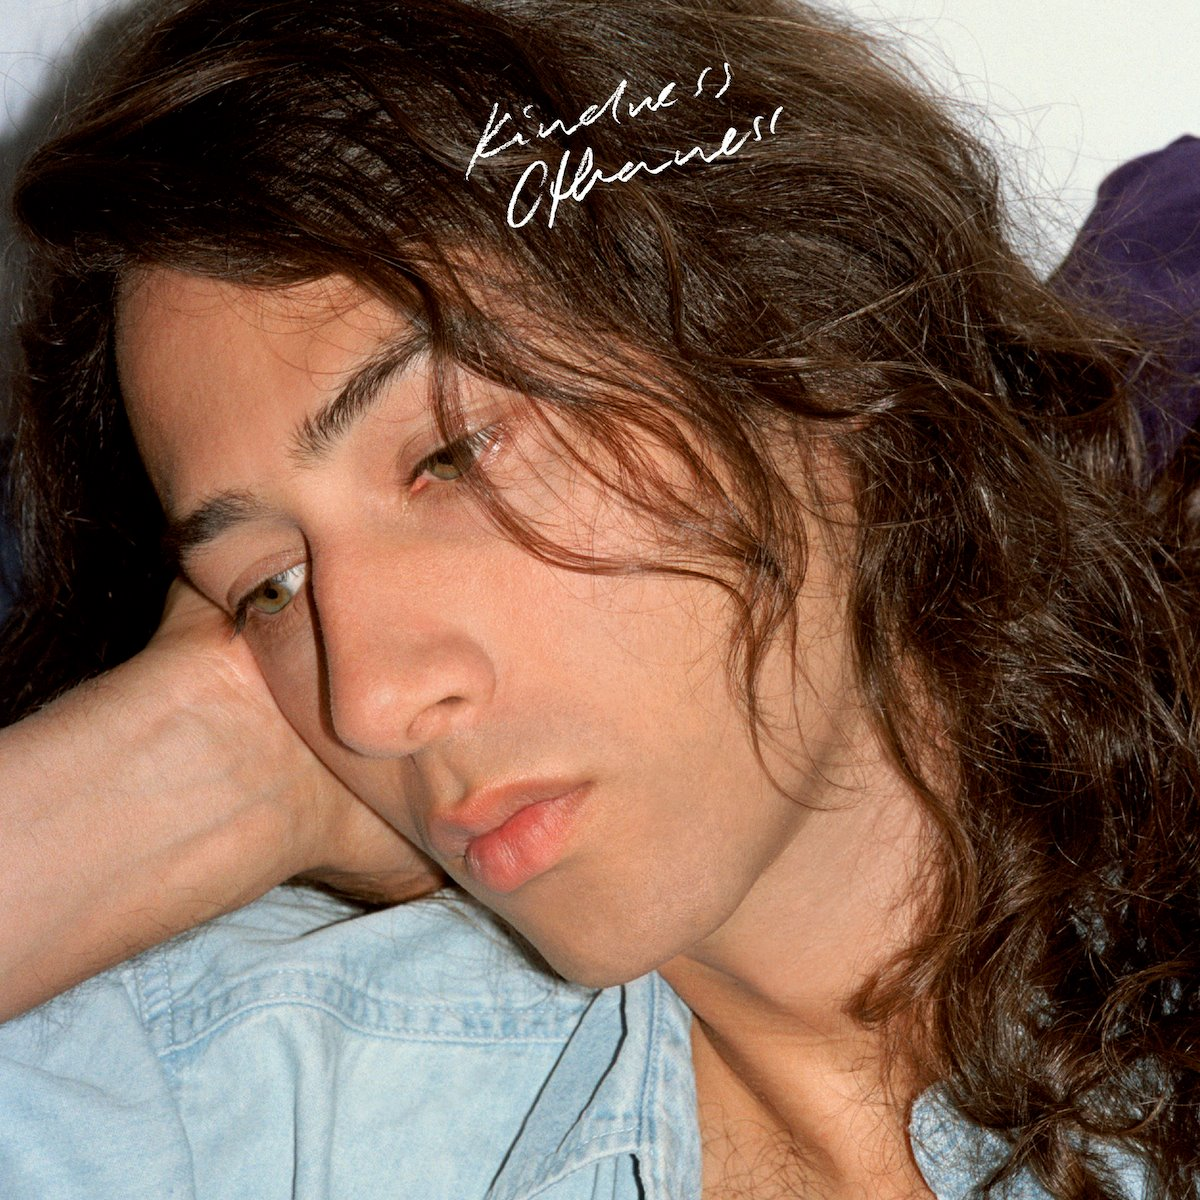 kindness-otherness-album-cover